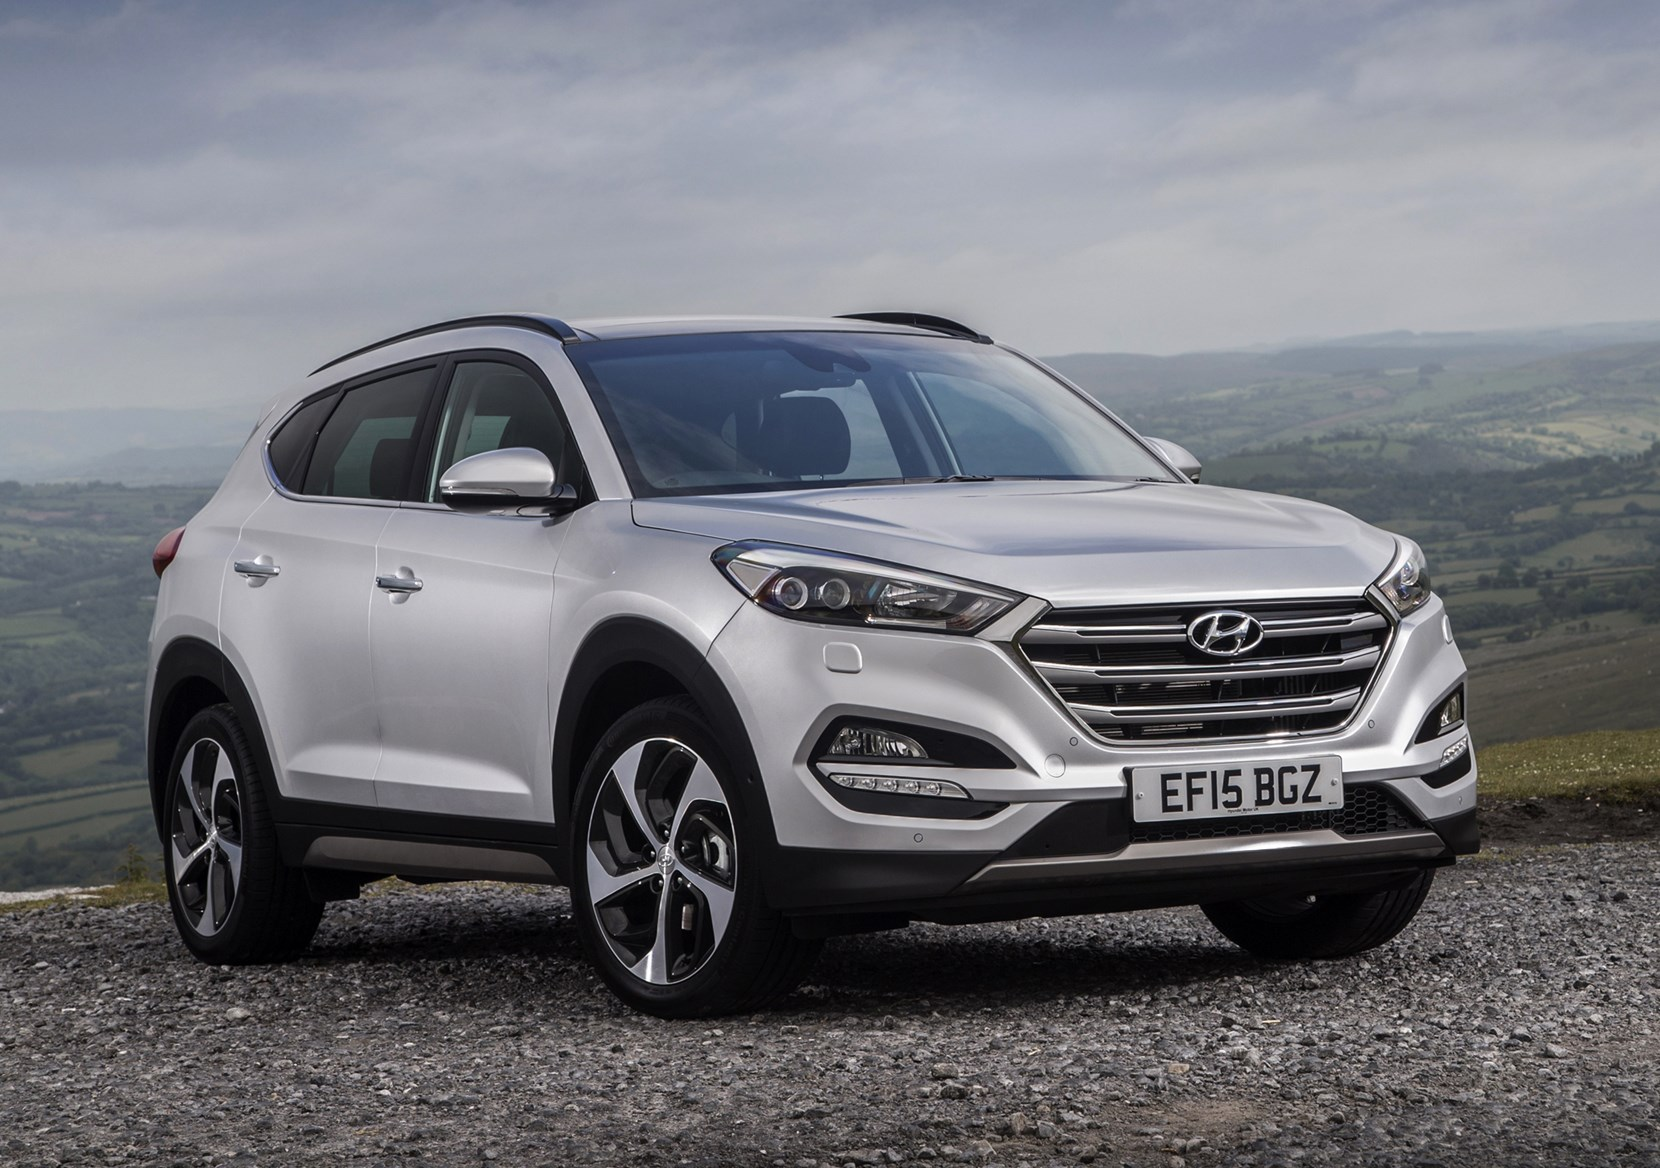 hyundai tucson suv review running costs parkers. Black Bedroom Furniture Sets. Home Design Ideas